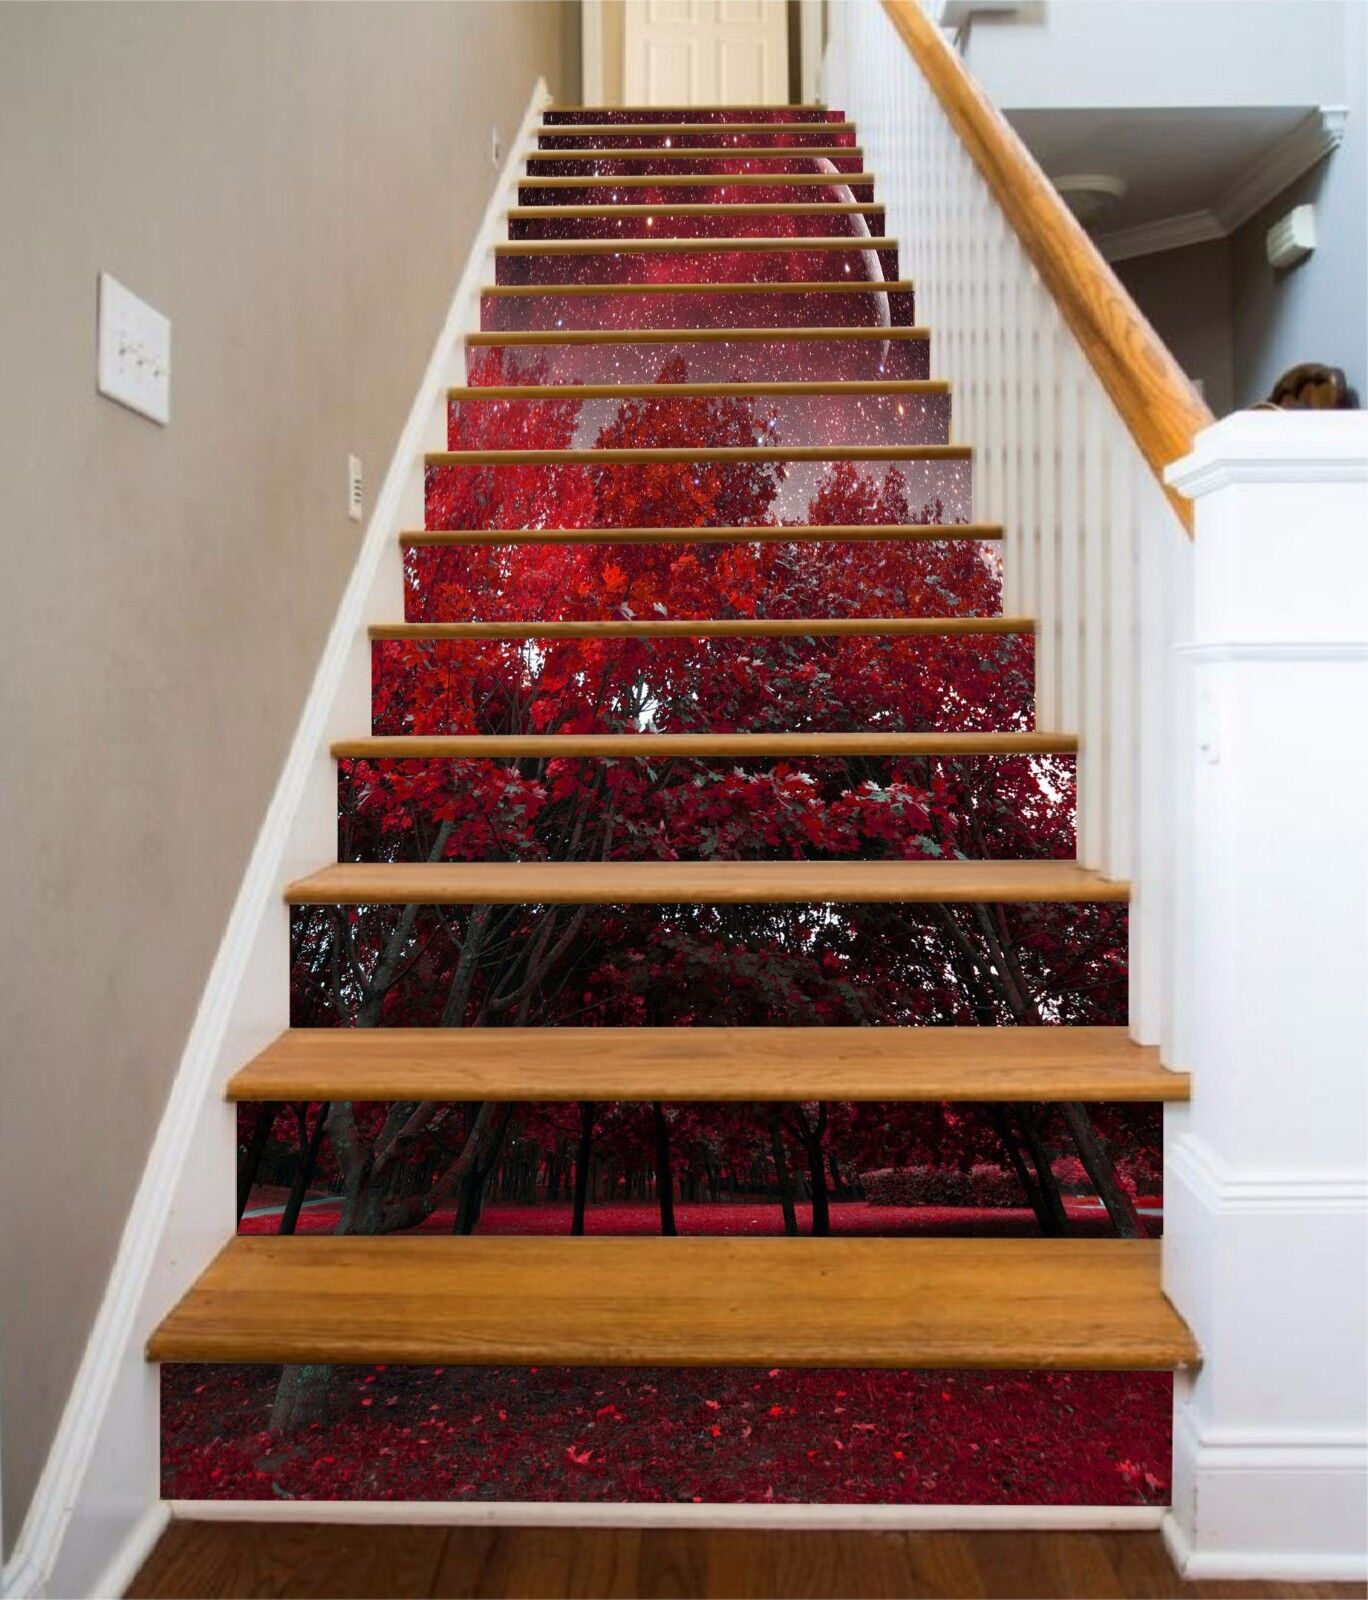 3D ROT woods 353 Stair Risers Decoration Photo Mural Vinyl Decal Wallpaper UK